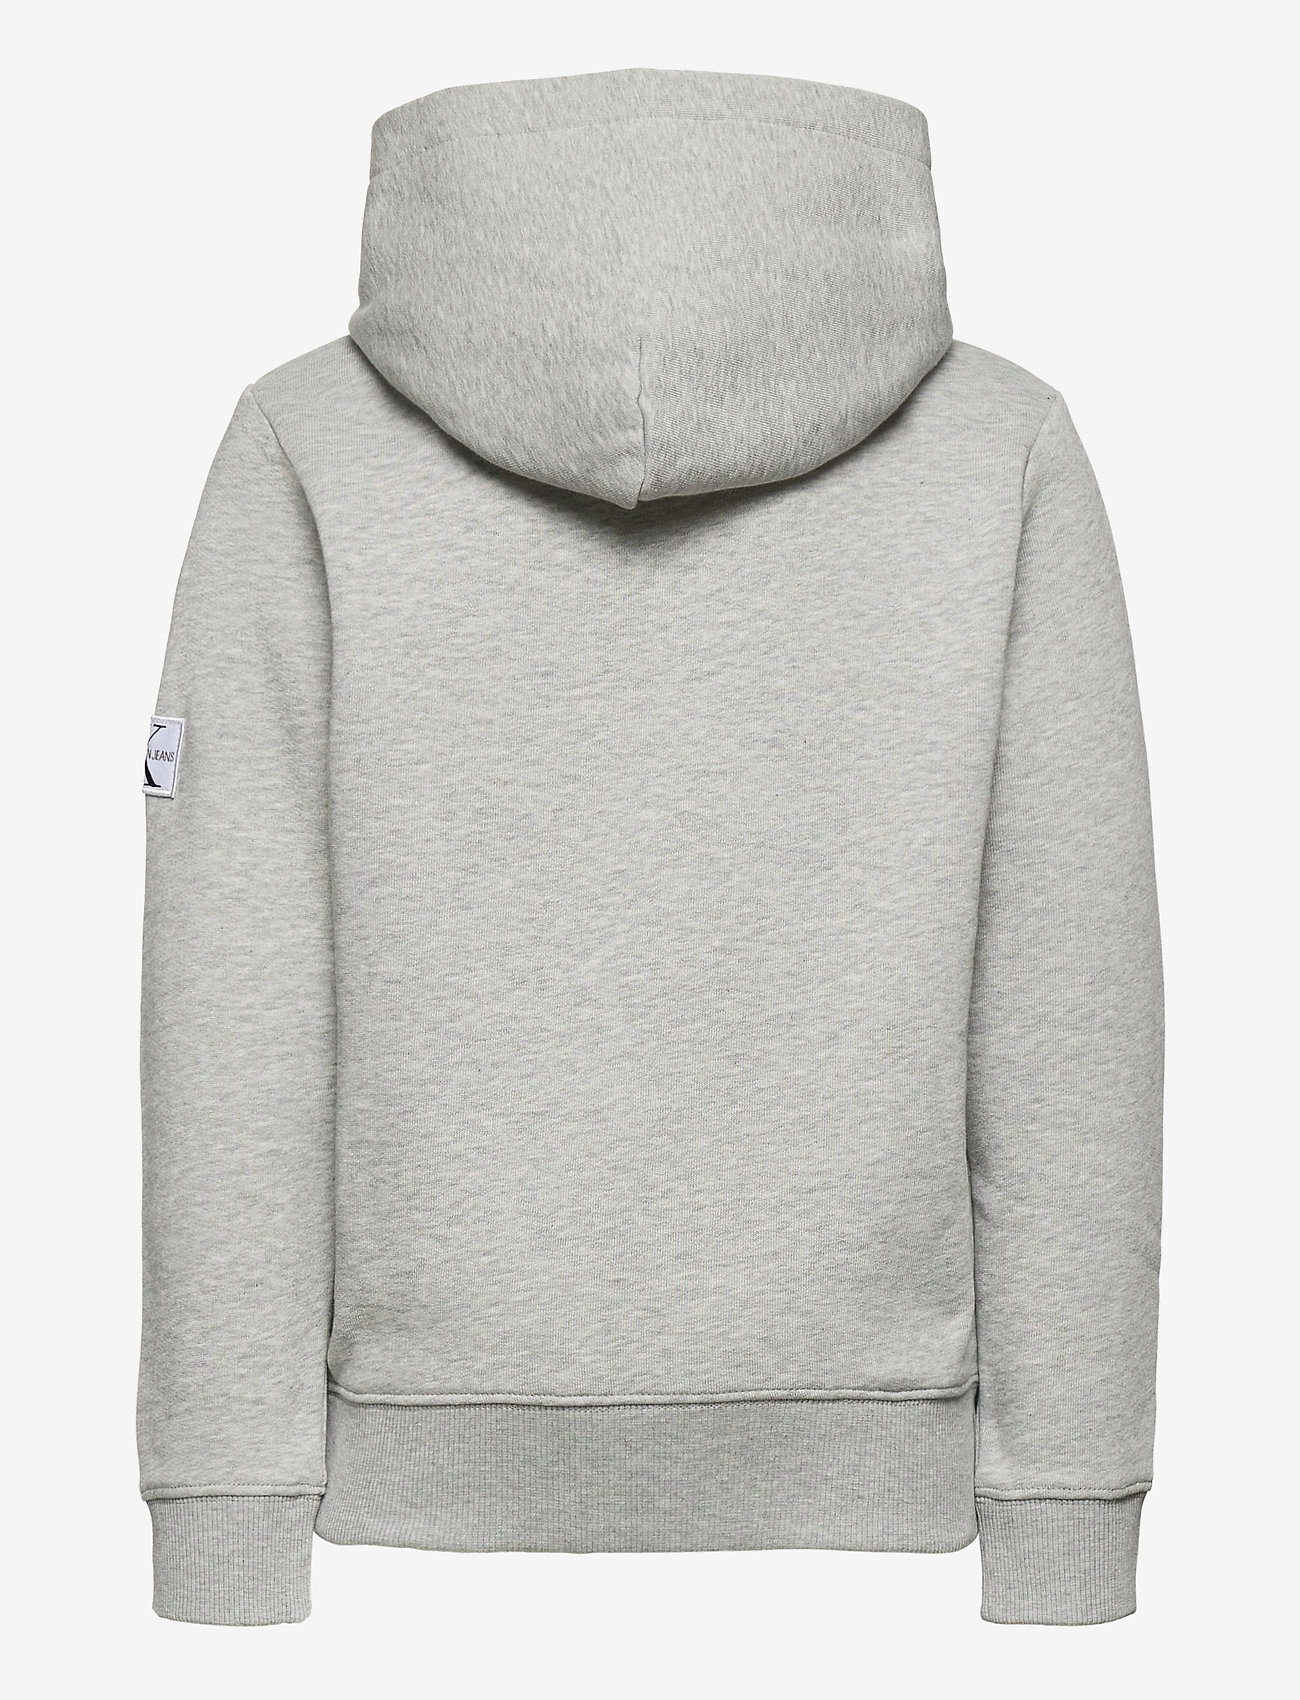 Calvin Klein - MONOGRAM SLEEVE HOODIE - hoodies - light grey heather - 1